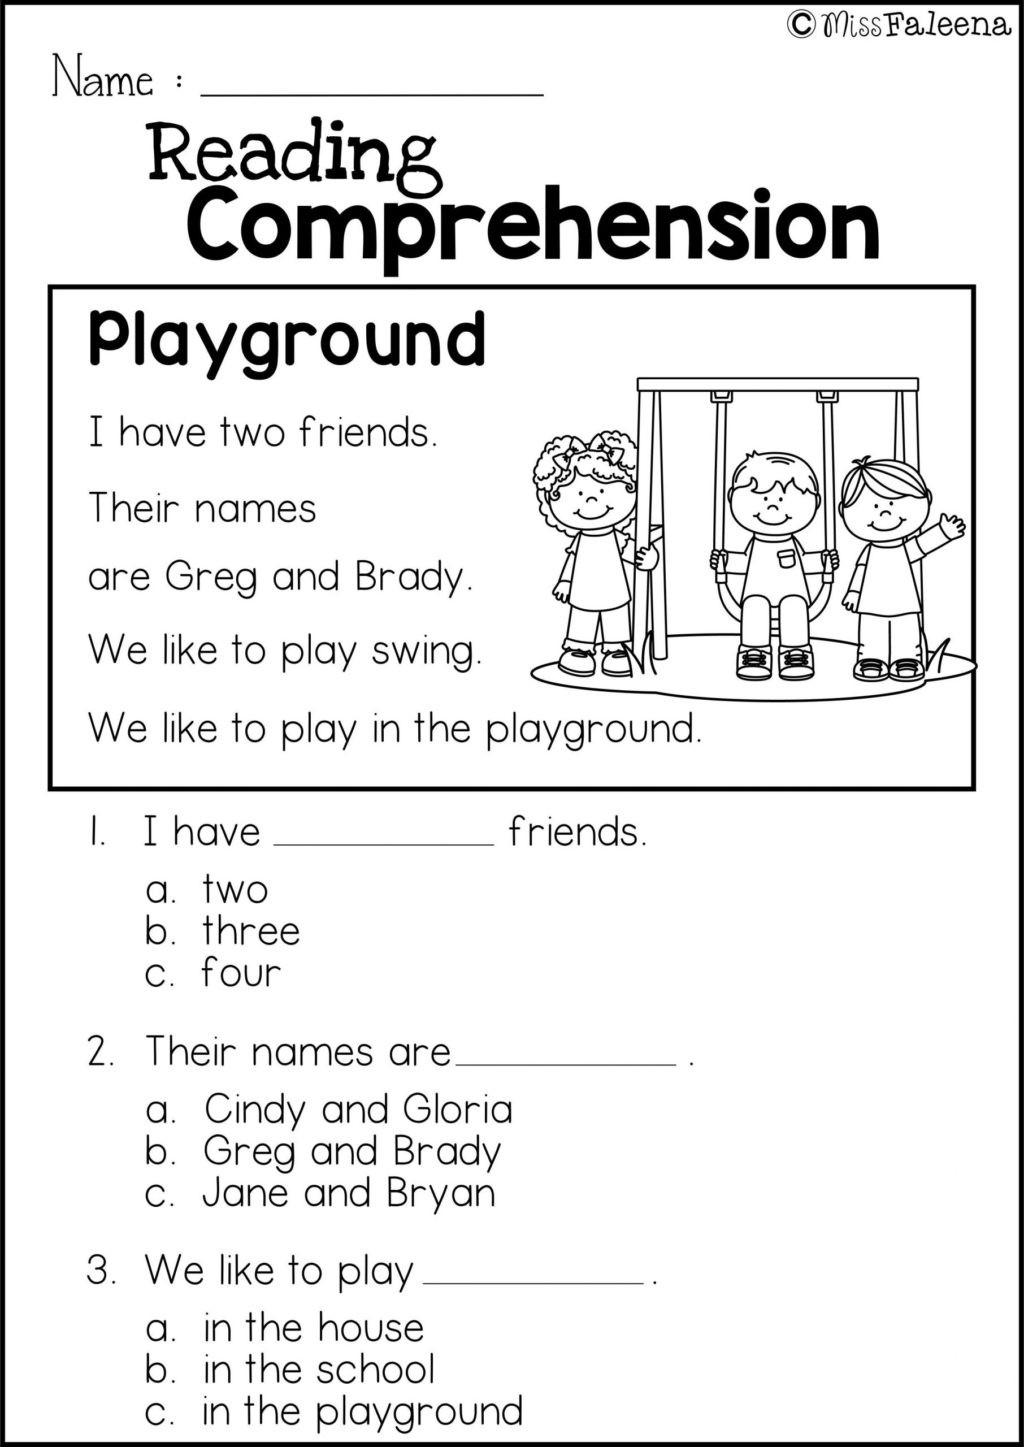 Free 1st Grade Comprehension Worksheets Worksheet Worksheet Ideas 1st Grade Reading Prehension